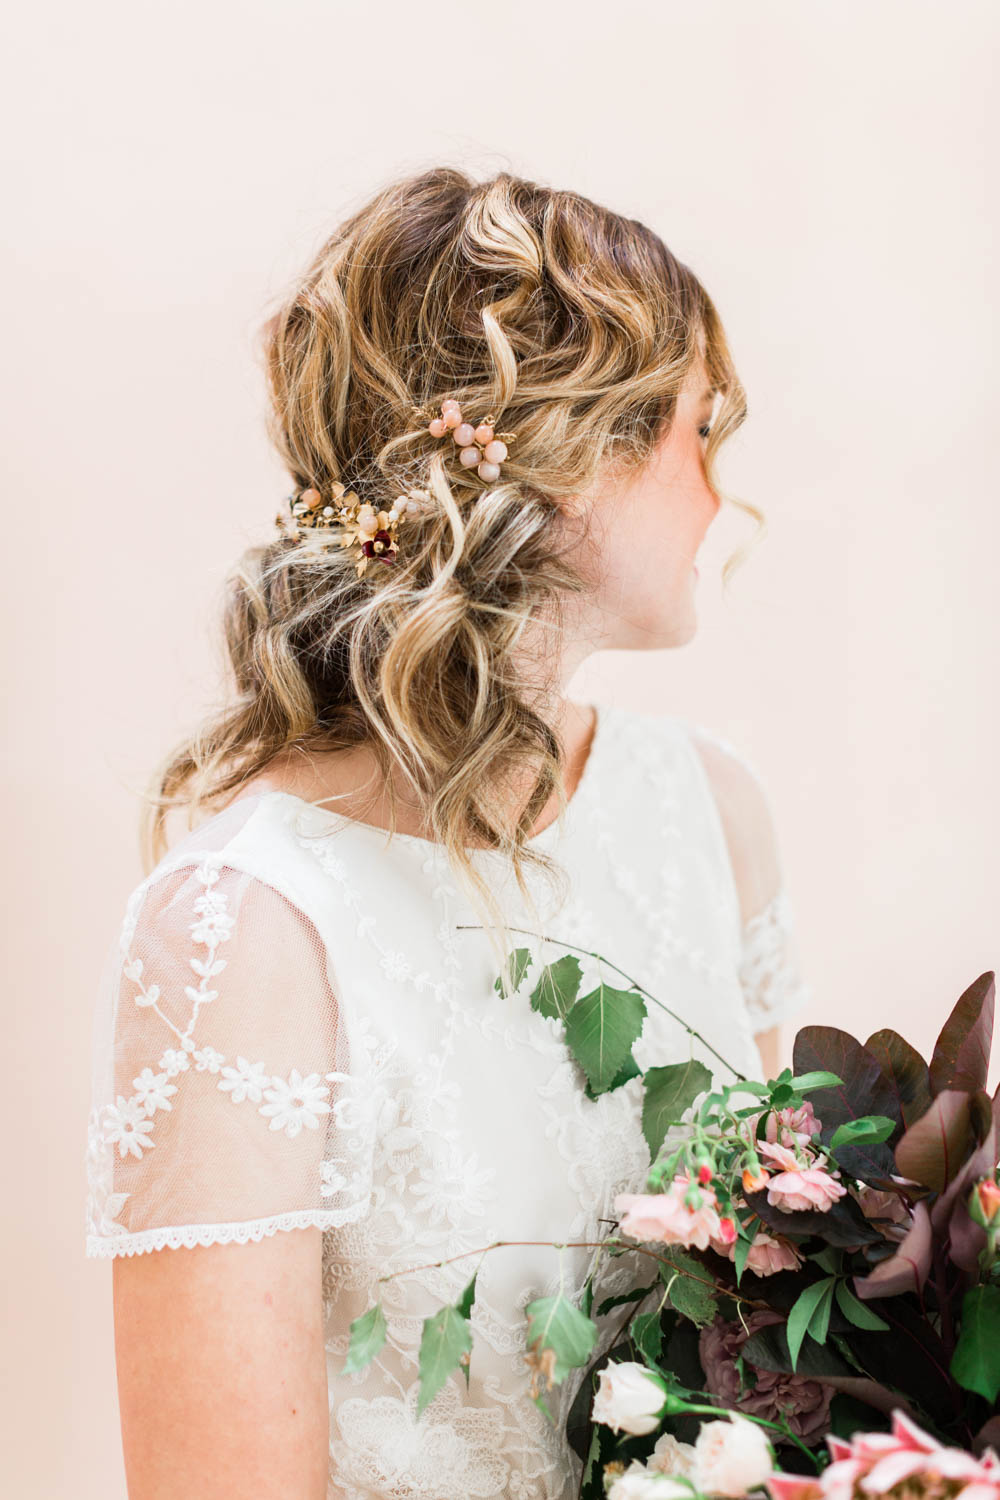 Bridal hair piece, Bride holding bouquet of pink green deep colors with pops of white by Oak and the Owl, Cavin Elizabeth Photography